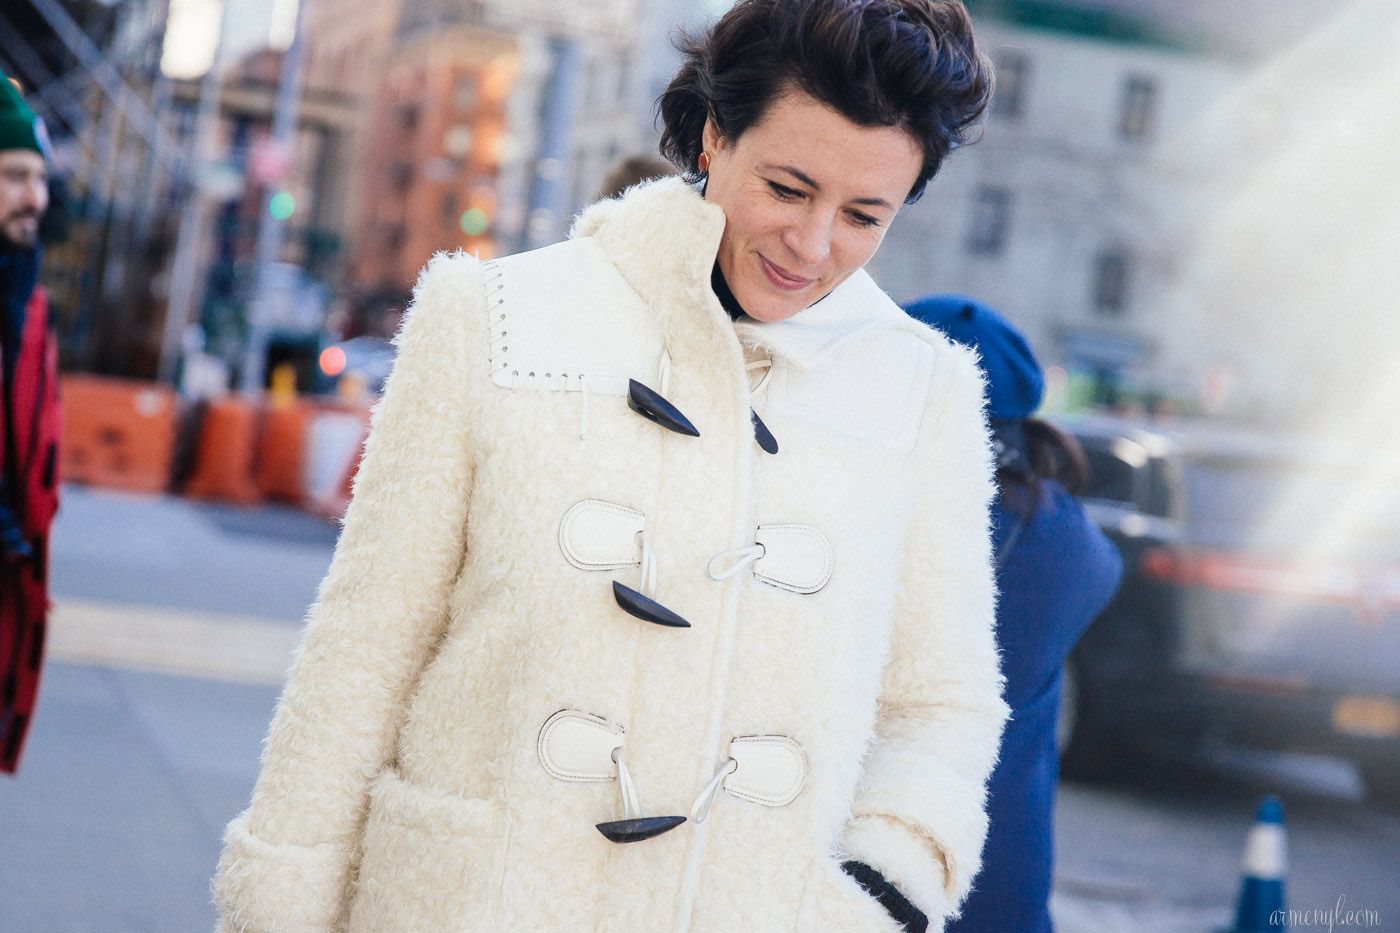 Blogger Garance Dore and Fiance Chris Norton at J Crew FW 2016 at New York Fashion Week photographed by blogger Armenyl.com